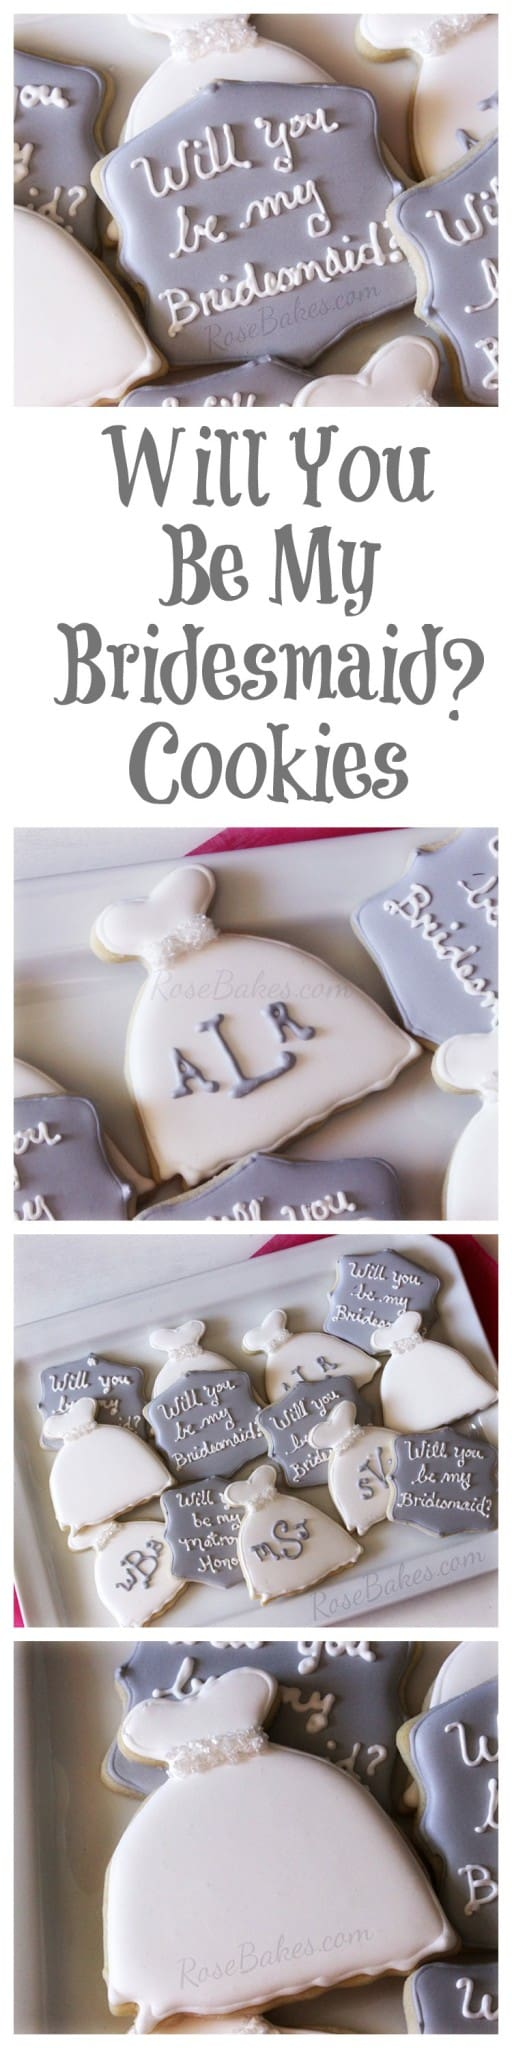 Will You Be My Bridesmaid and Wedding Dress Cookies at RoseBakes